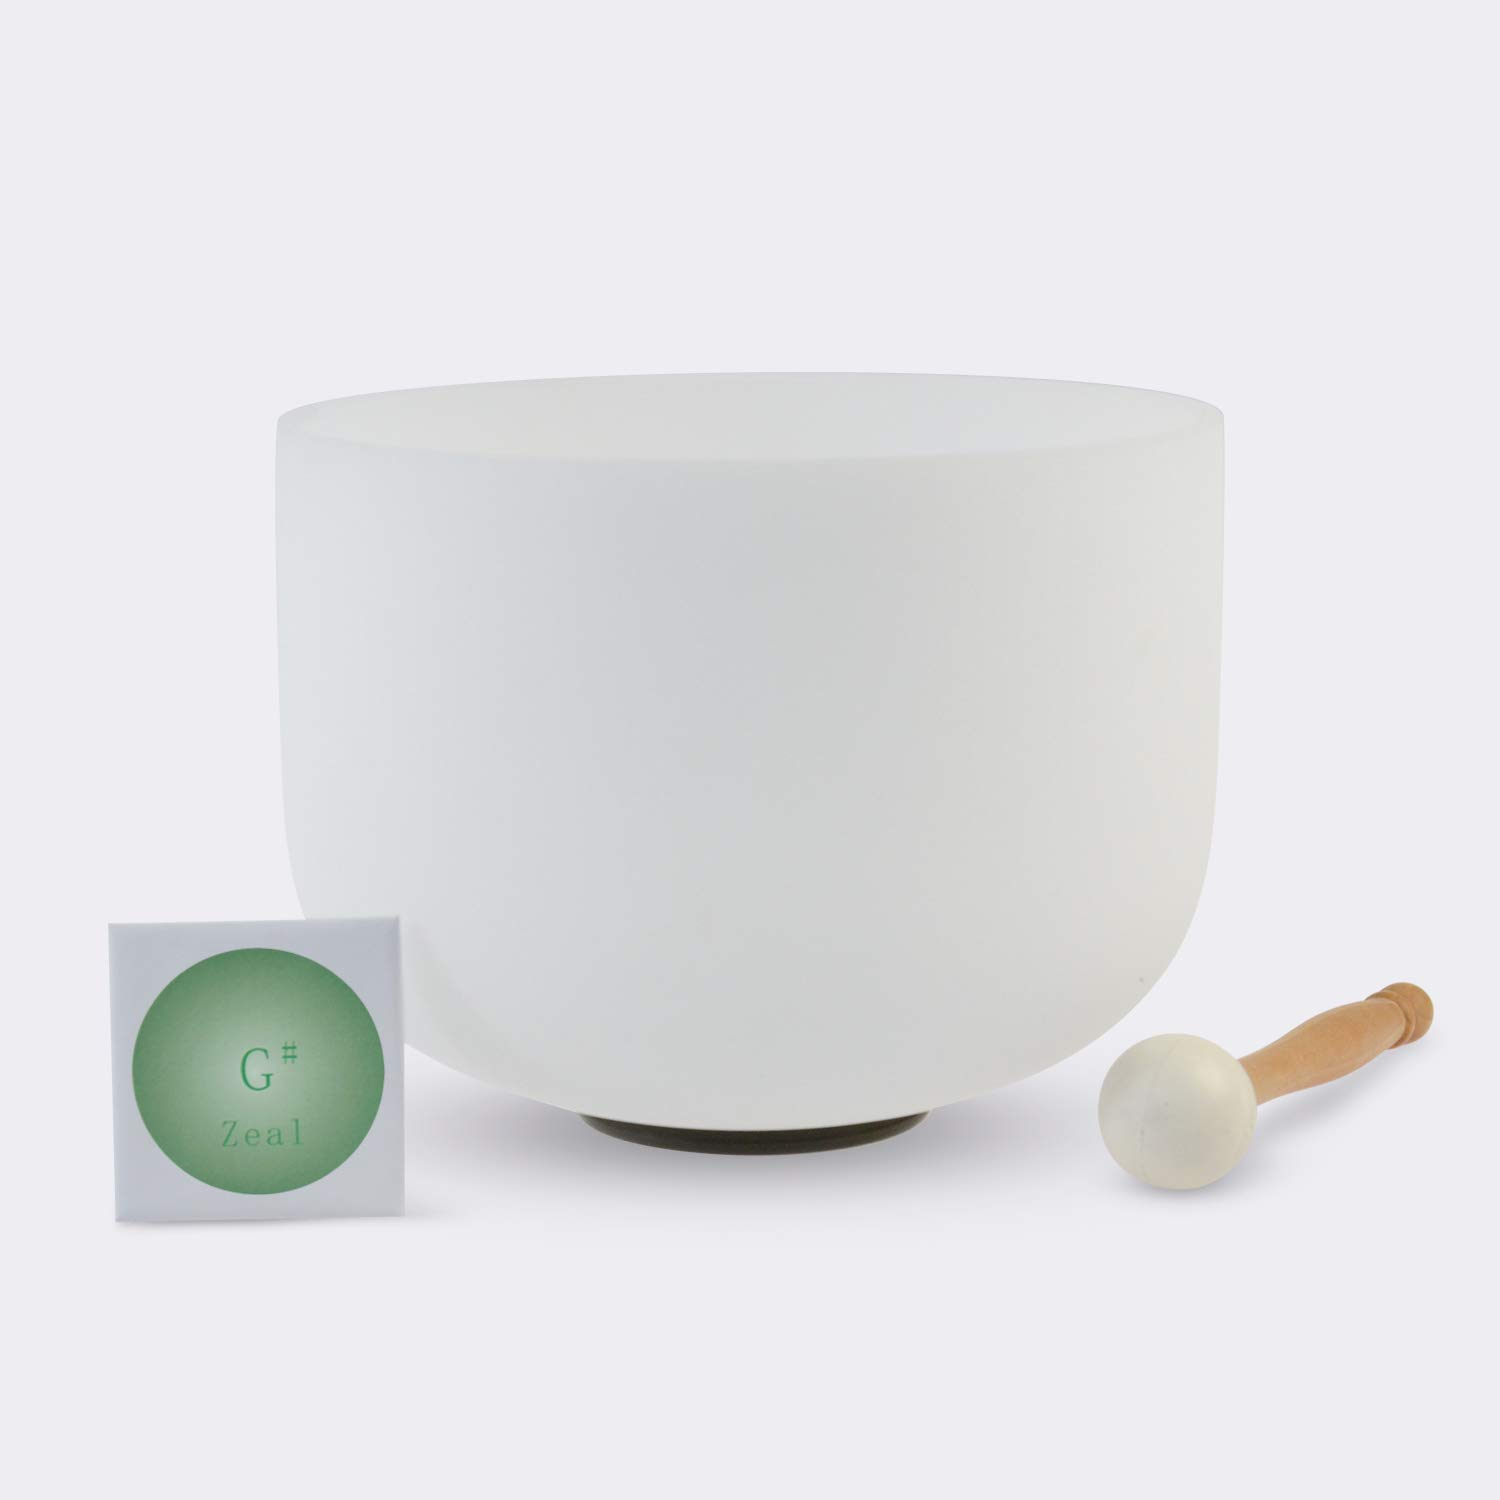 TOPFUND Singing Bowls G# Note Crystal Singing Bowl Zeal Chakra 10 inch (O ring and Rubber Mallet Included)